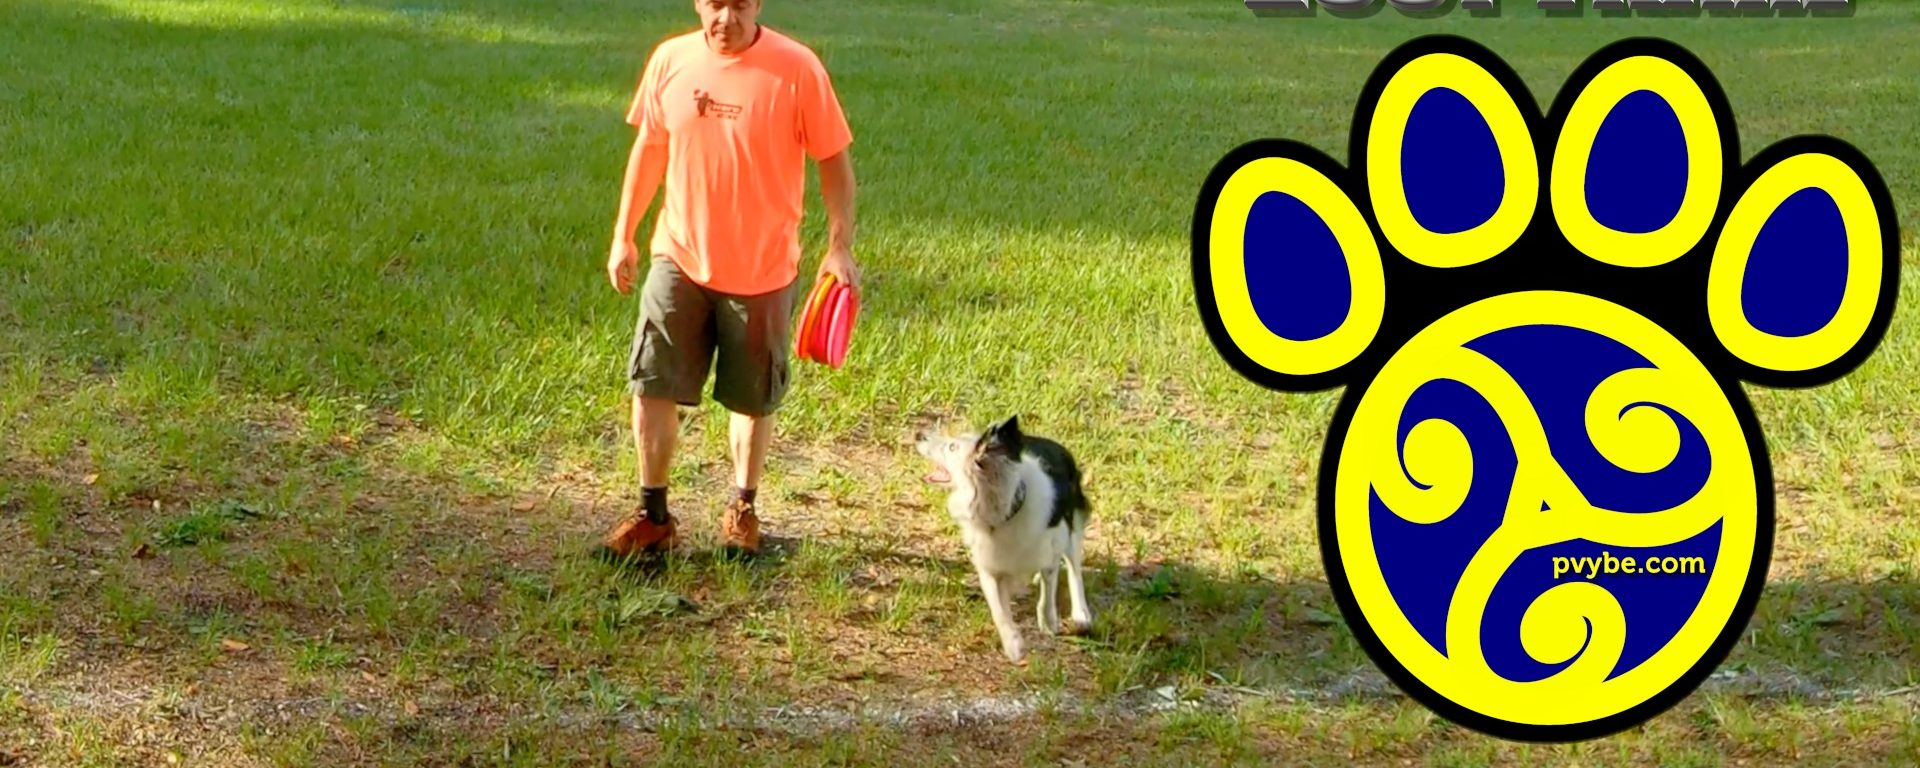 Working Drop? Drop and Toss n Fetch Don't Mix. Unless…